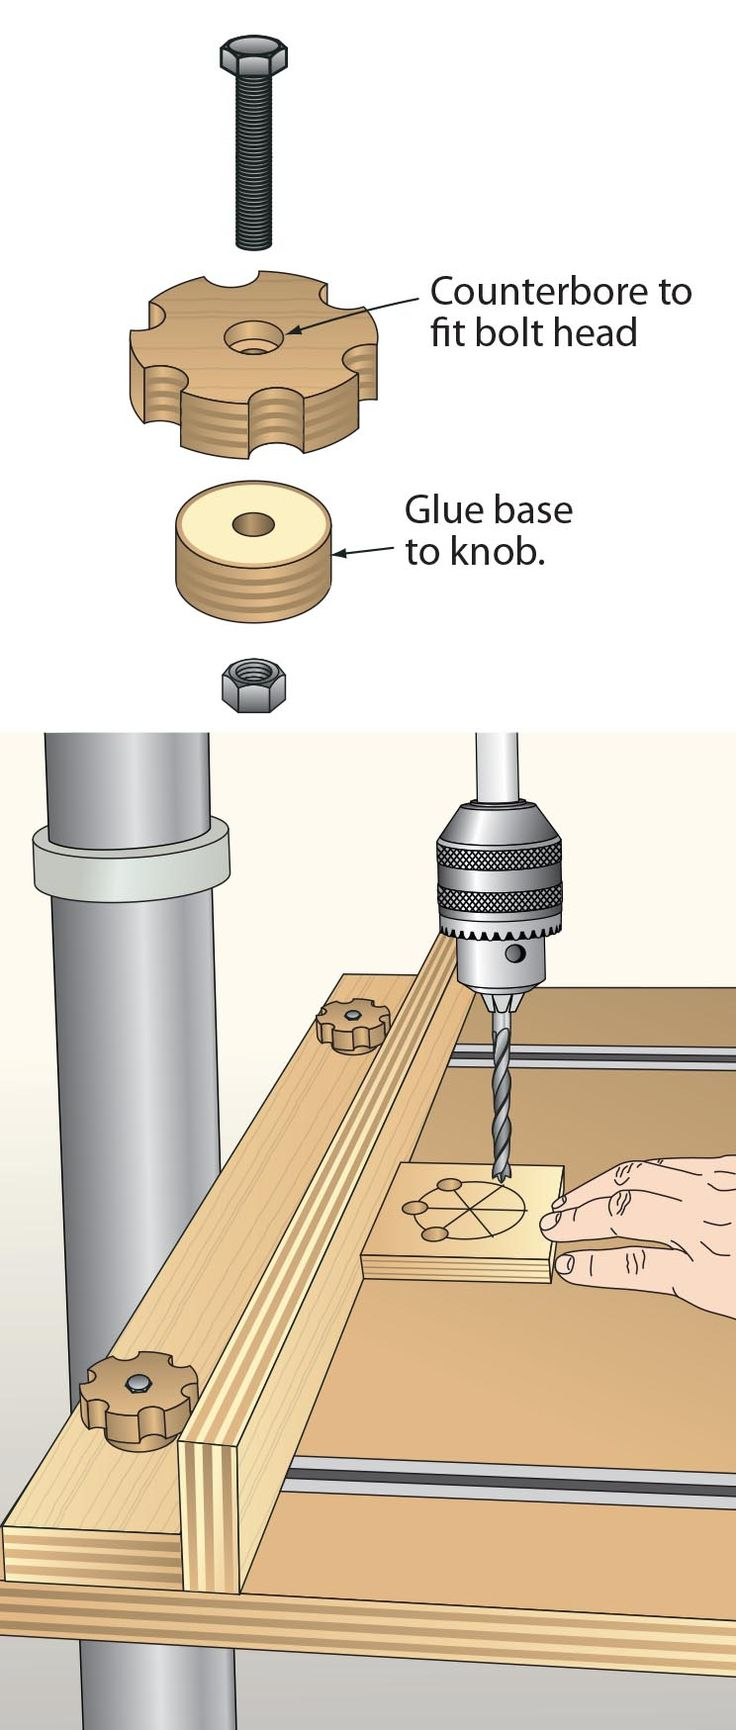 "When building jigs, I save a little money and get exactly the size I want by making my own knobs. On a piece of scrap, lay out a circle as large as you'd like the knob to be. Draw three equally spaced, intersecting lines across the circle's diameter. Then, drill a 1⁄2"" hole where each line meets the circle, as well as a counterbore and through hole in the circle's center (where the lines intersect) for a bolt. Cut along the circle between the holes. Complete your knob by drawing another ..."